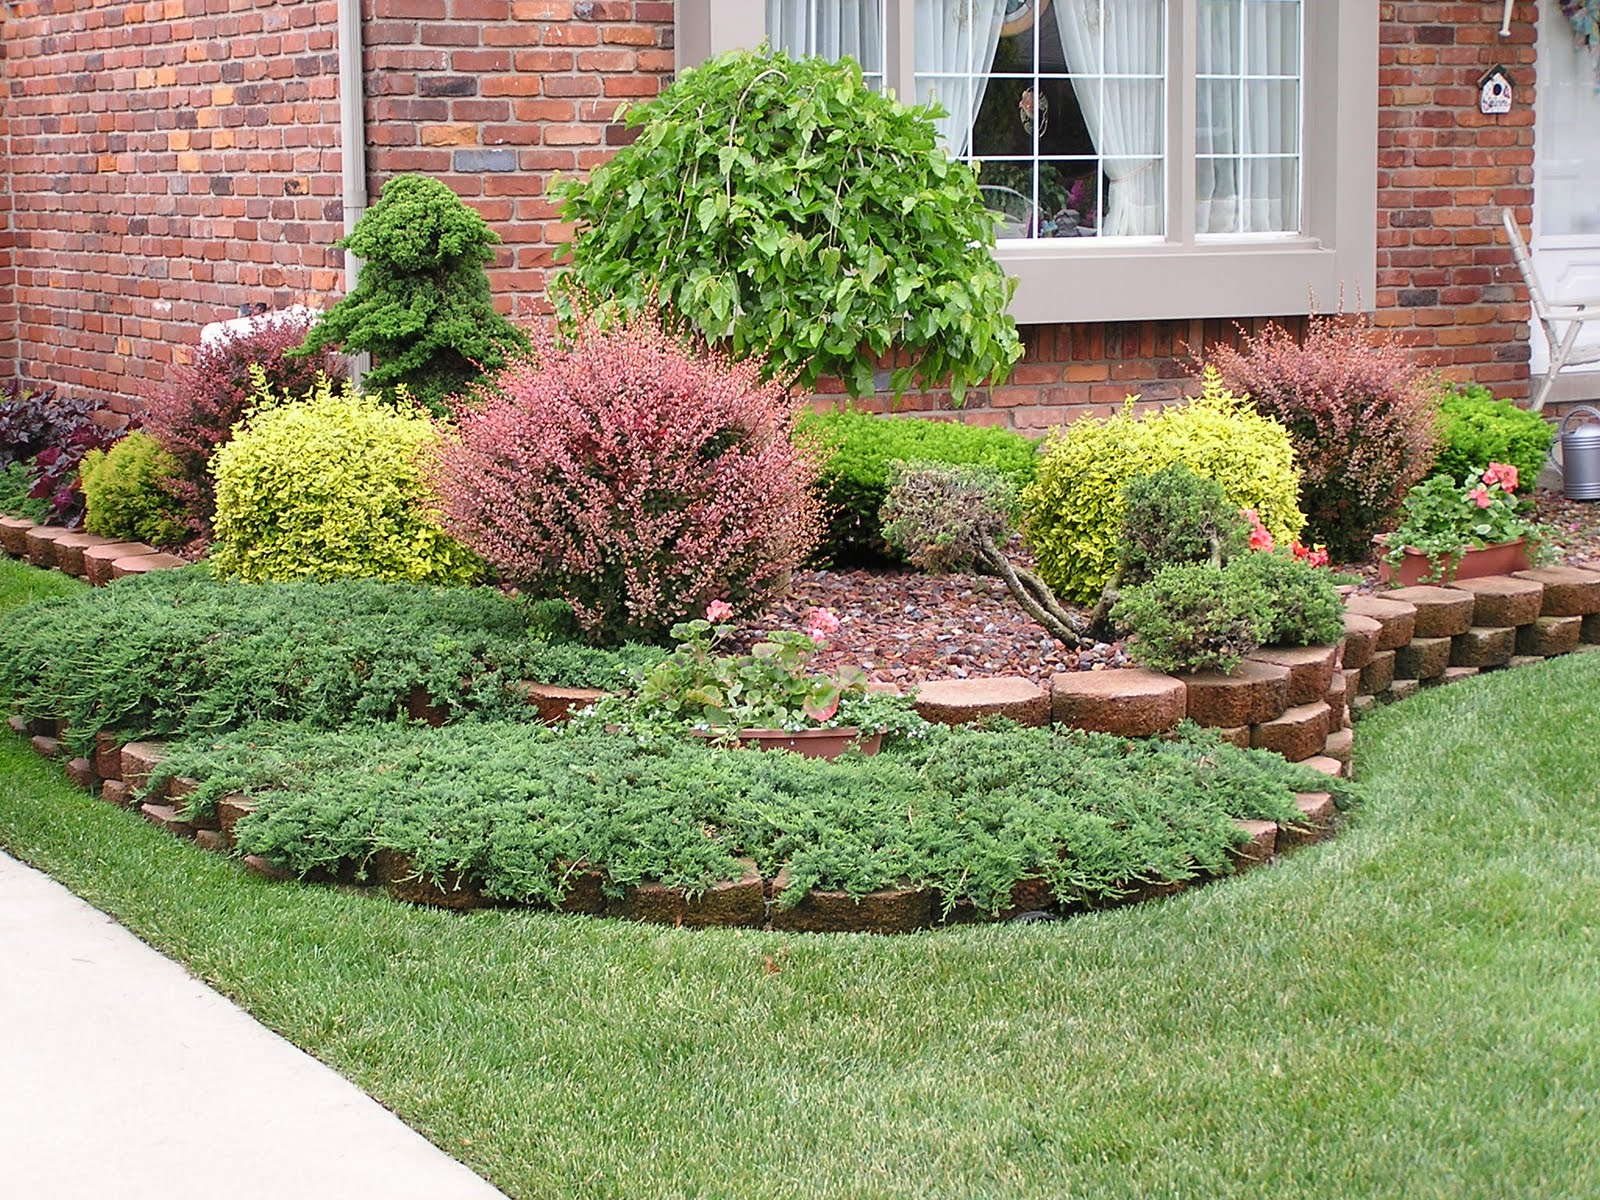 D i y d e s i g n curb appeal part 2 the landscaping for Small front yard ideas